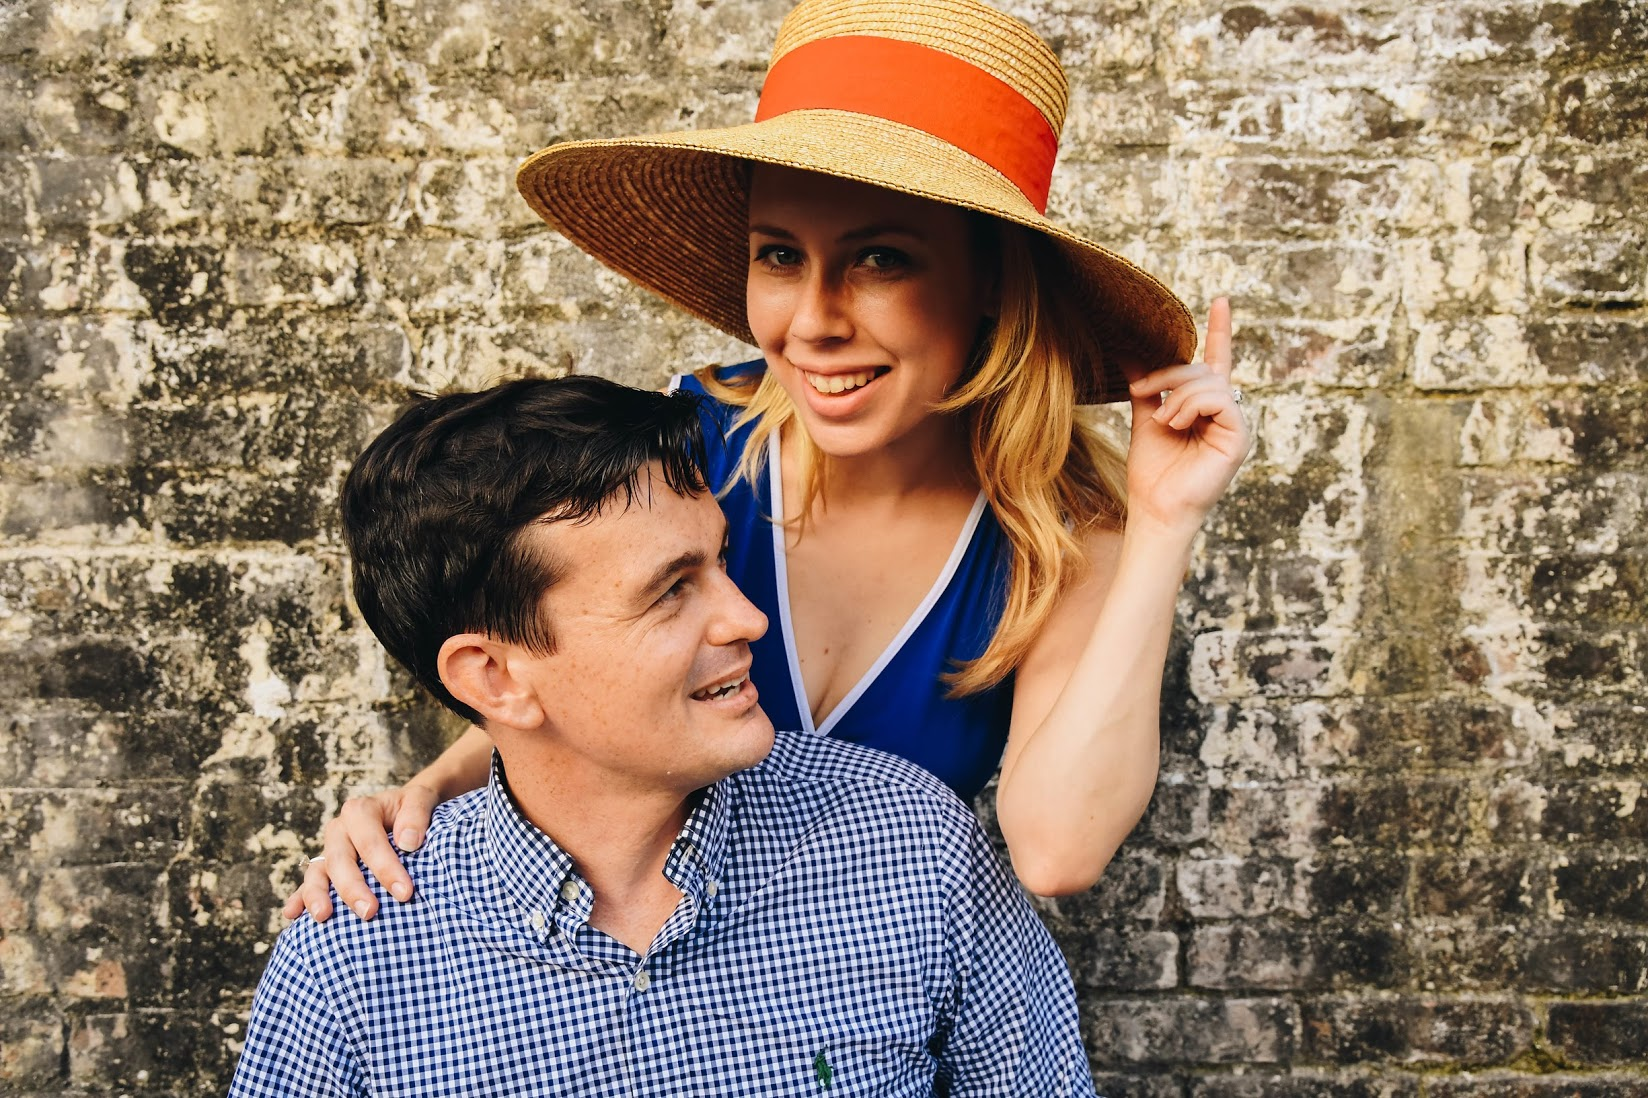 Vintage Hats for Spring and Summer